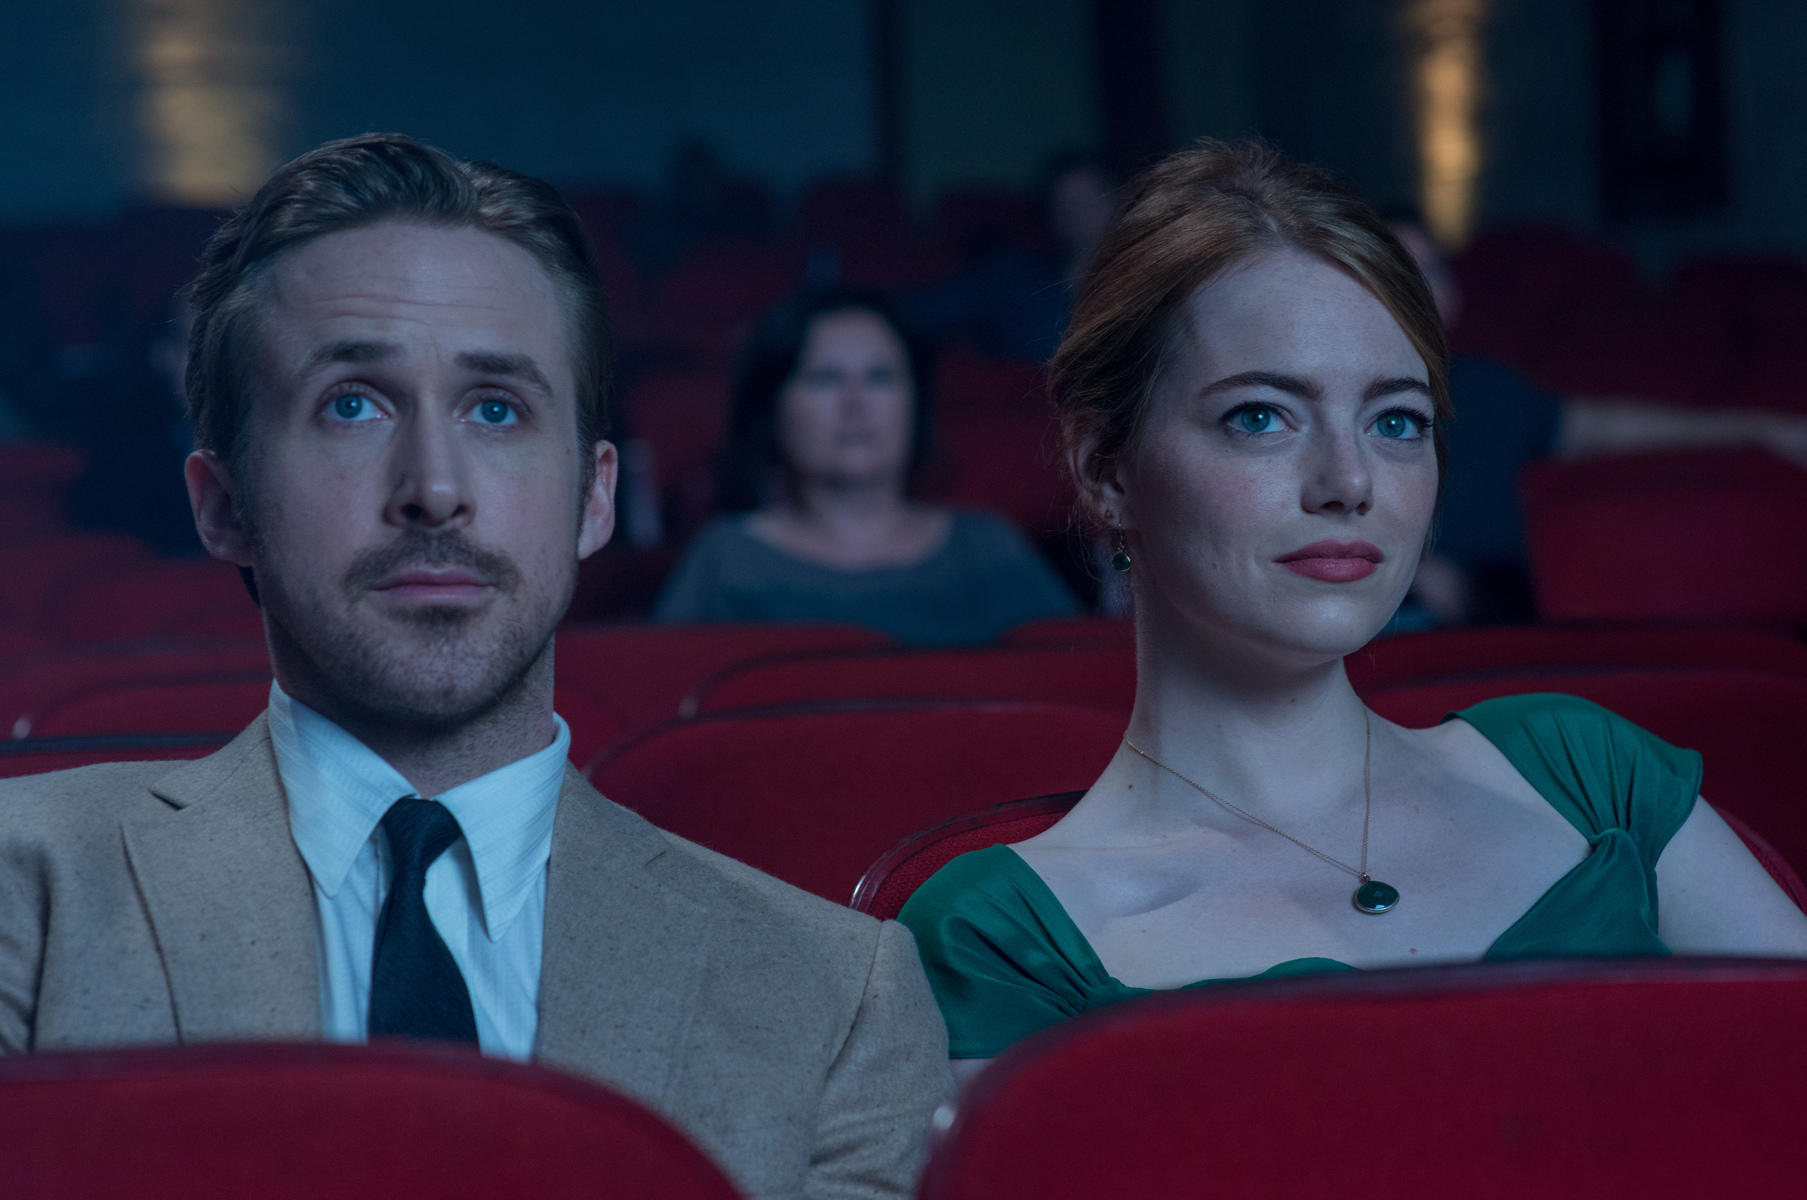 Ryan Gosling e Emma Stone em cena do musical La La Land, de Damien Chazelle, vencedor de oito Critics' Choice Awards (pic by moviepilot.de)